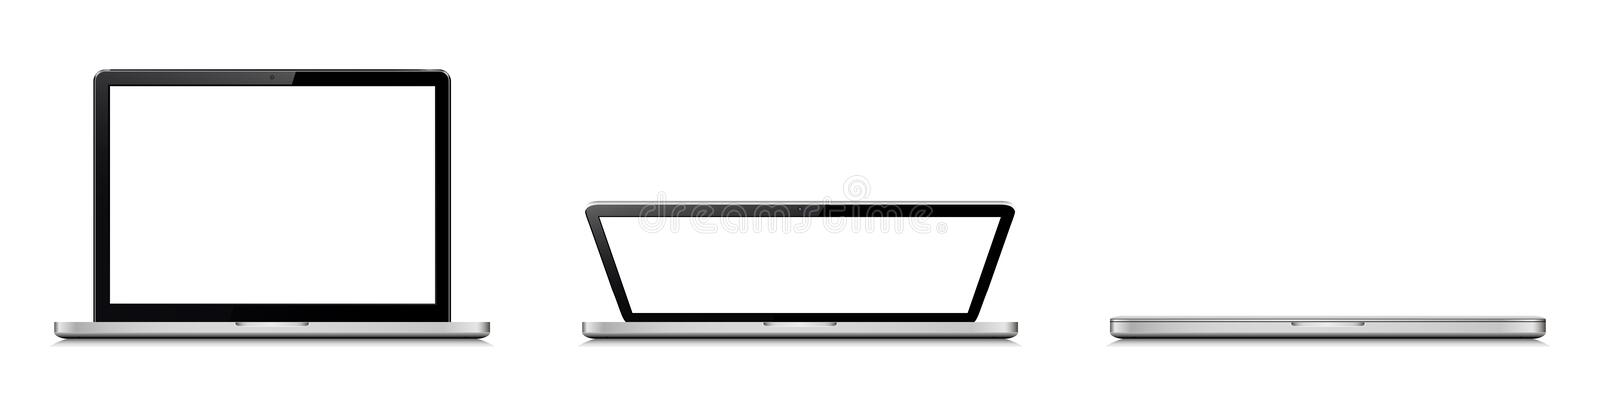 Open and closed laptop. Laptop lid opening stages stock photo